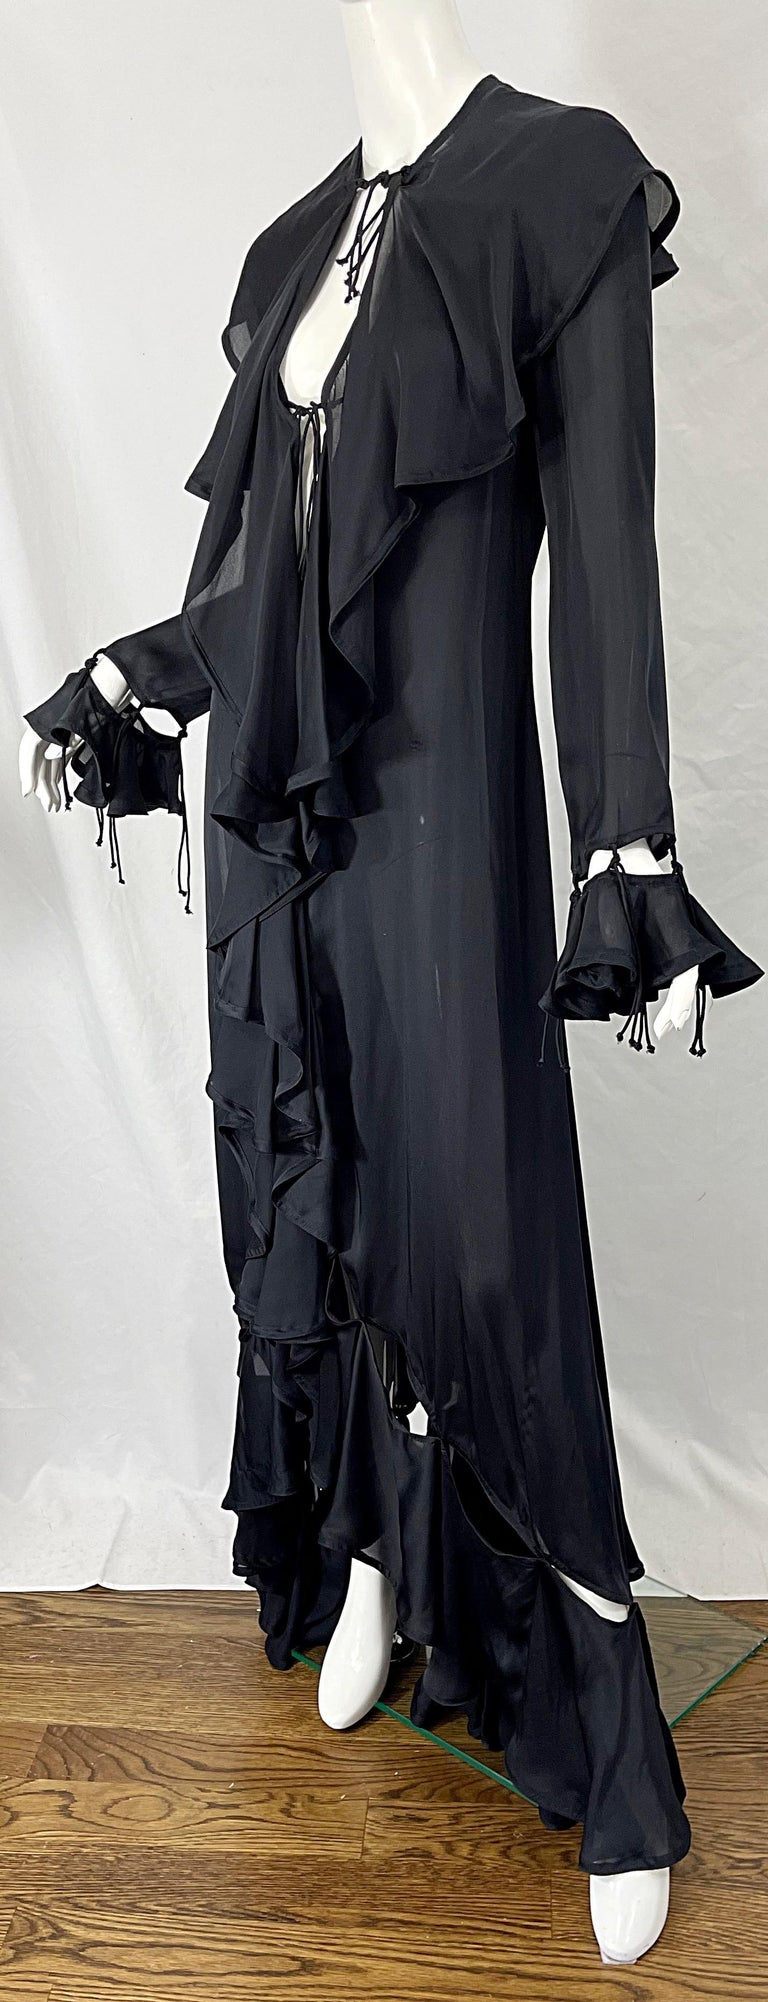 Yves Saint Laurent by Tom Ford Fall 2003 Runway Black Silk Chiffon Gown Size 38 For Sale 9